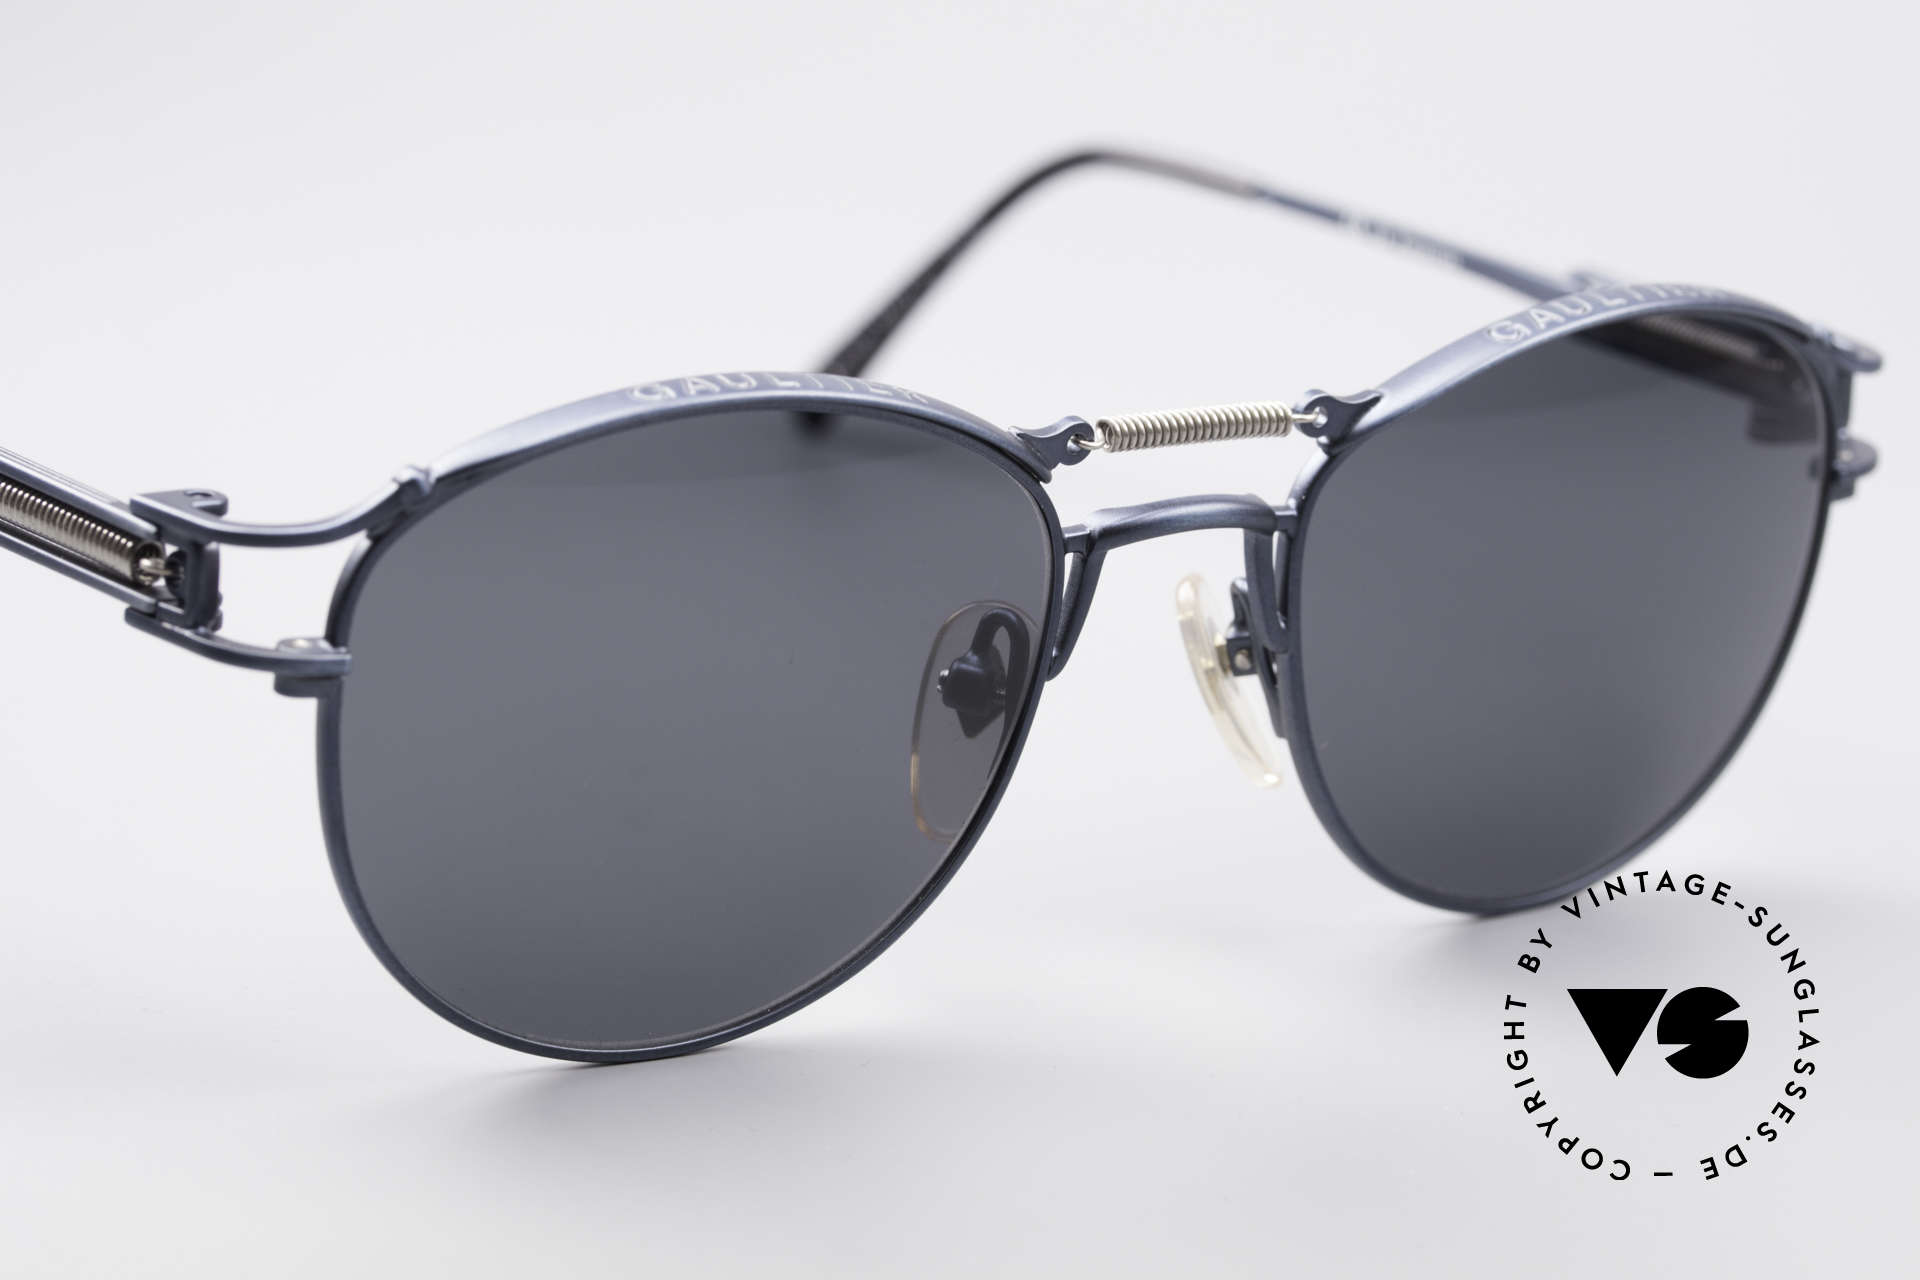 Jean Paul Gaultier 56-5107 Panto Designer Sunglasses, NO retro, but an unique vintage original from 1997, Made for Men and Women